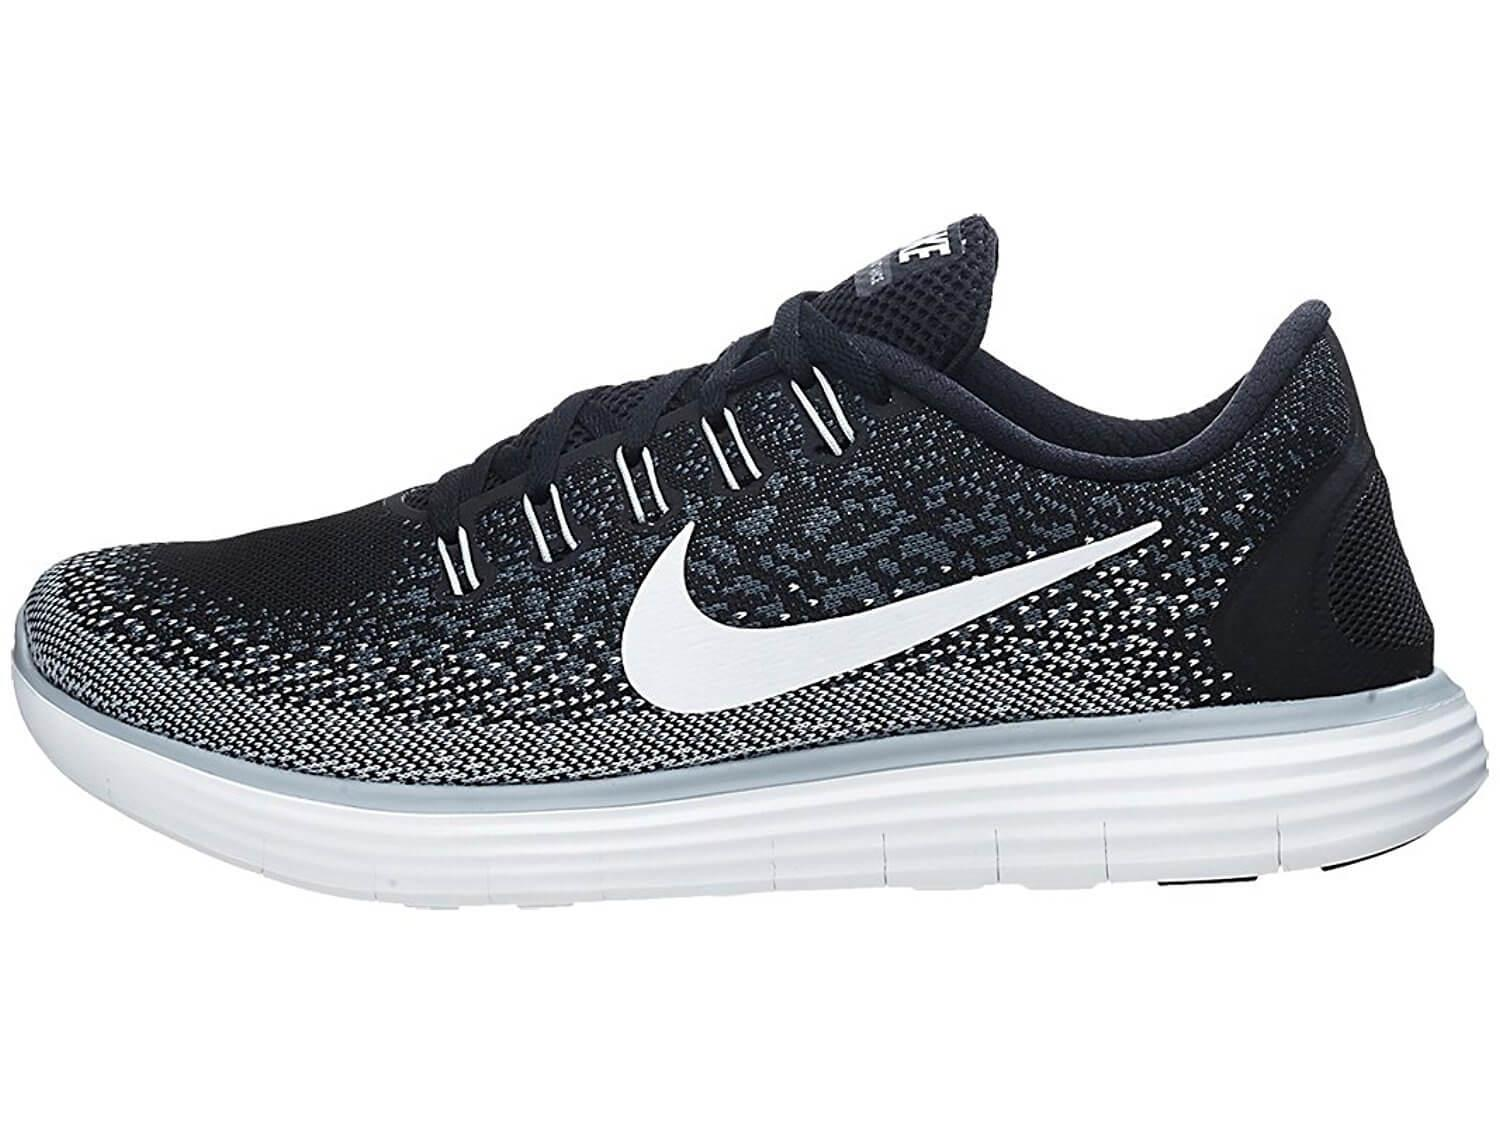 Nike Free Distance Running Shoes Review